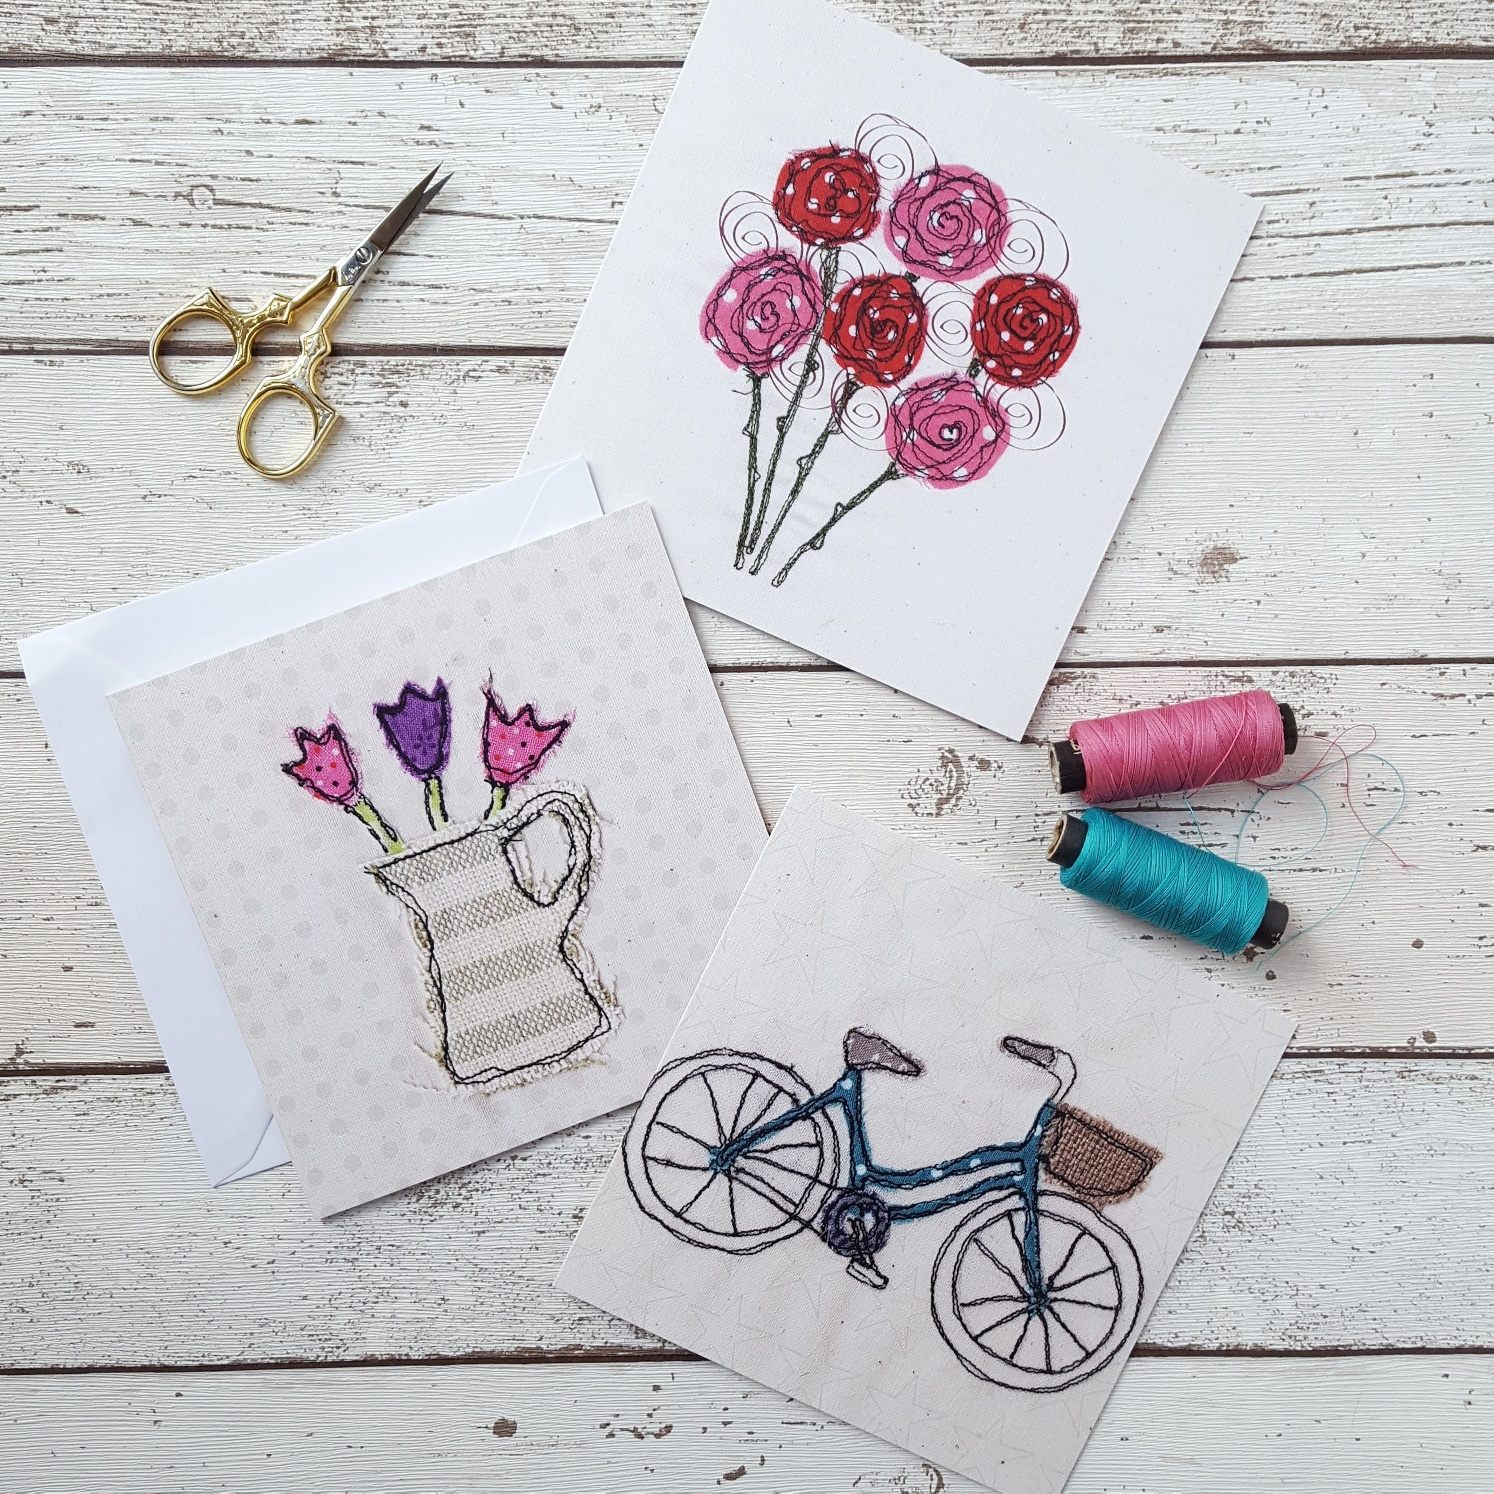 . Fabric stitched to cards. Bicycle, flowers in jug, bunch of flowers